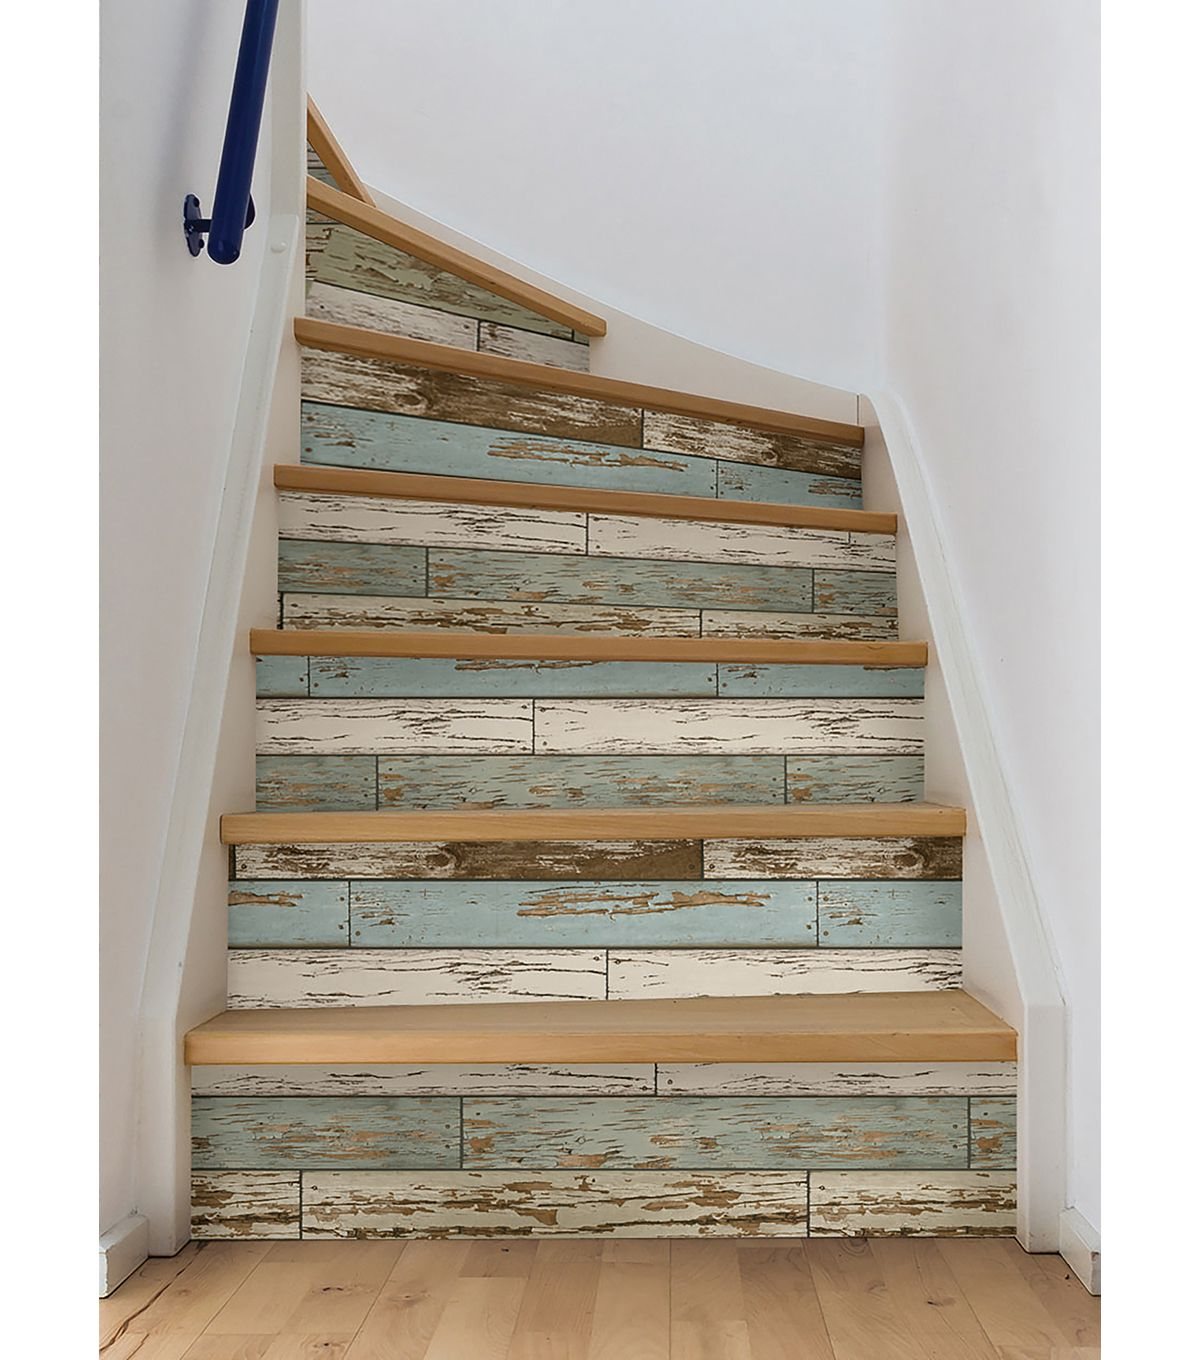 Wallpops Nuwallpaper Old Salem Peel Stick Wallpaper Online Only Product Staircase Decor Nuwallpaper Painted Stairs